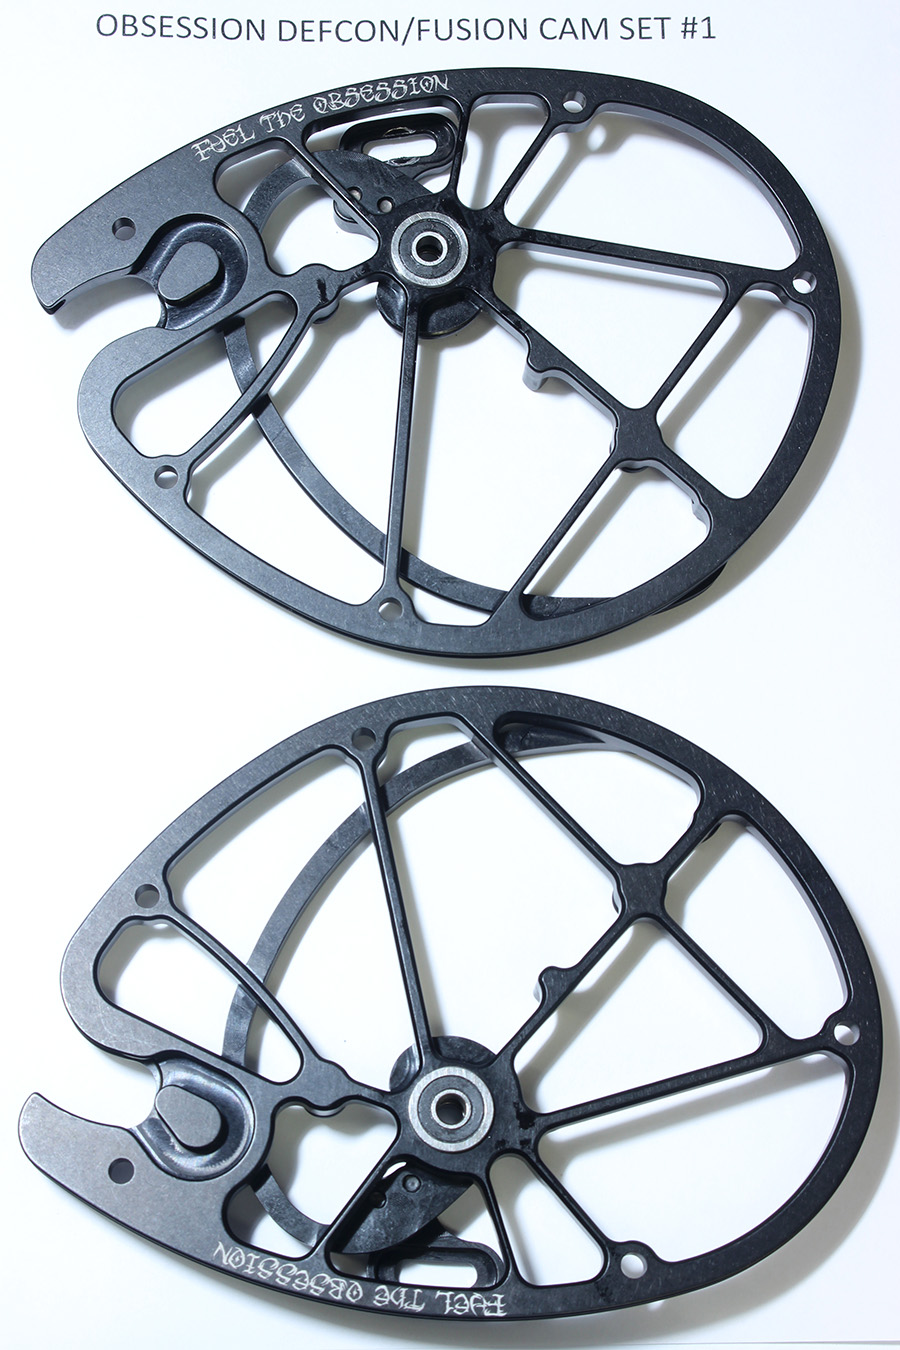 OEM Obsession Archery Defcon/Fusion 2-PC Cam Set, Size #1 (Top & Bottom) photo 1